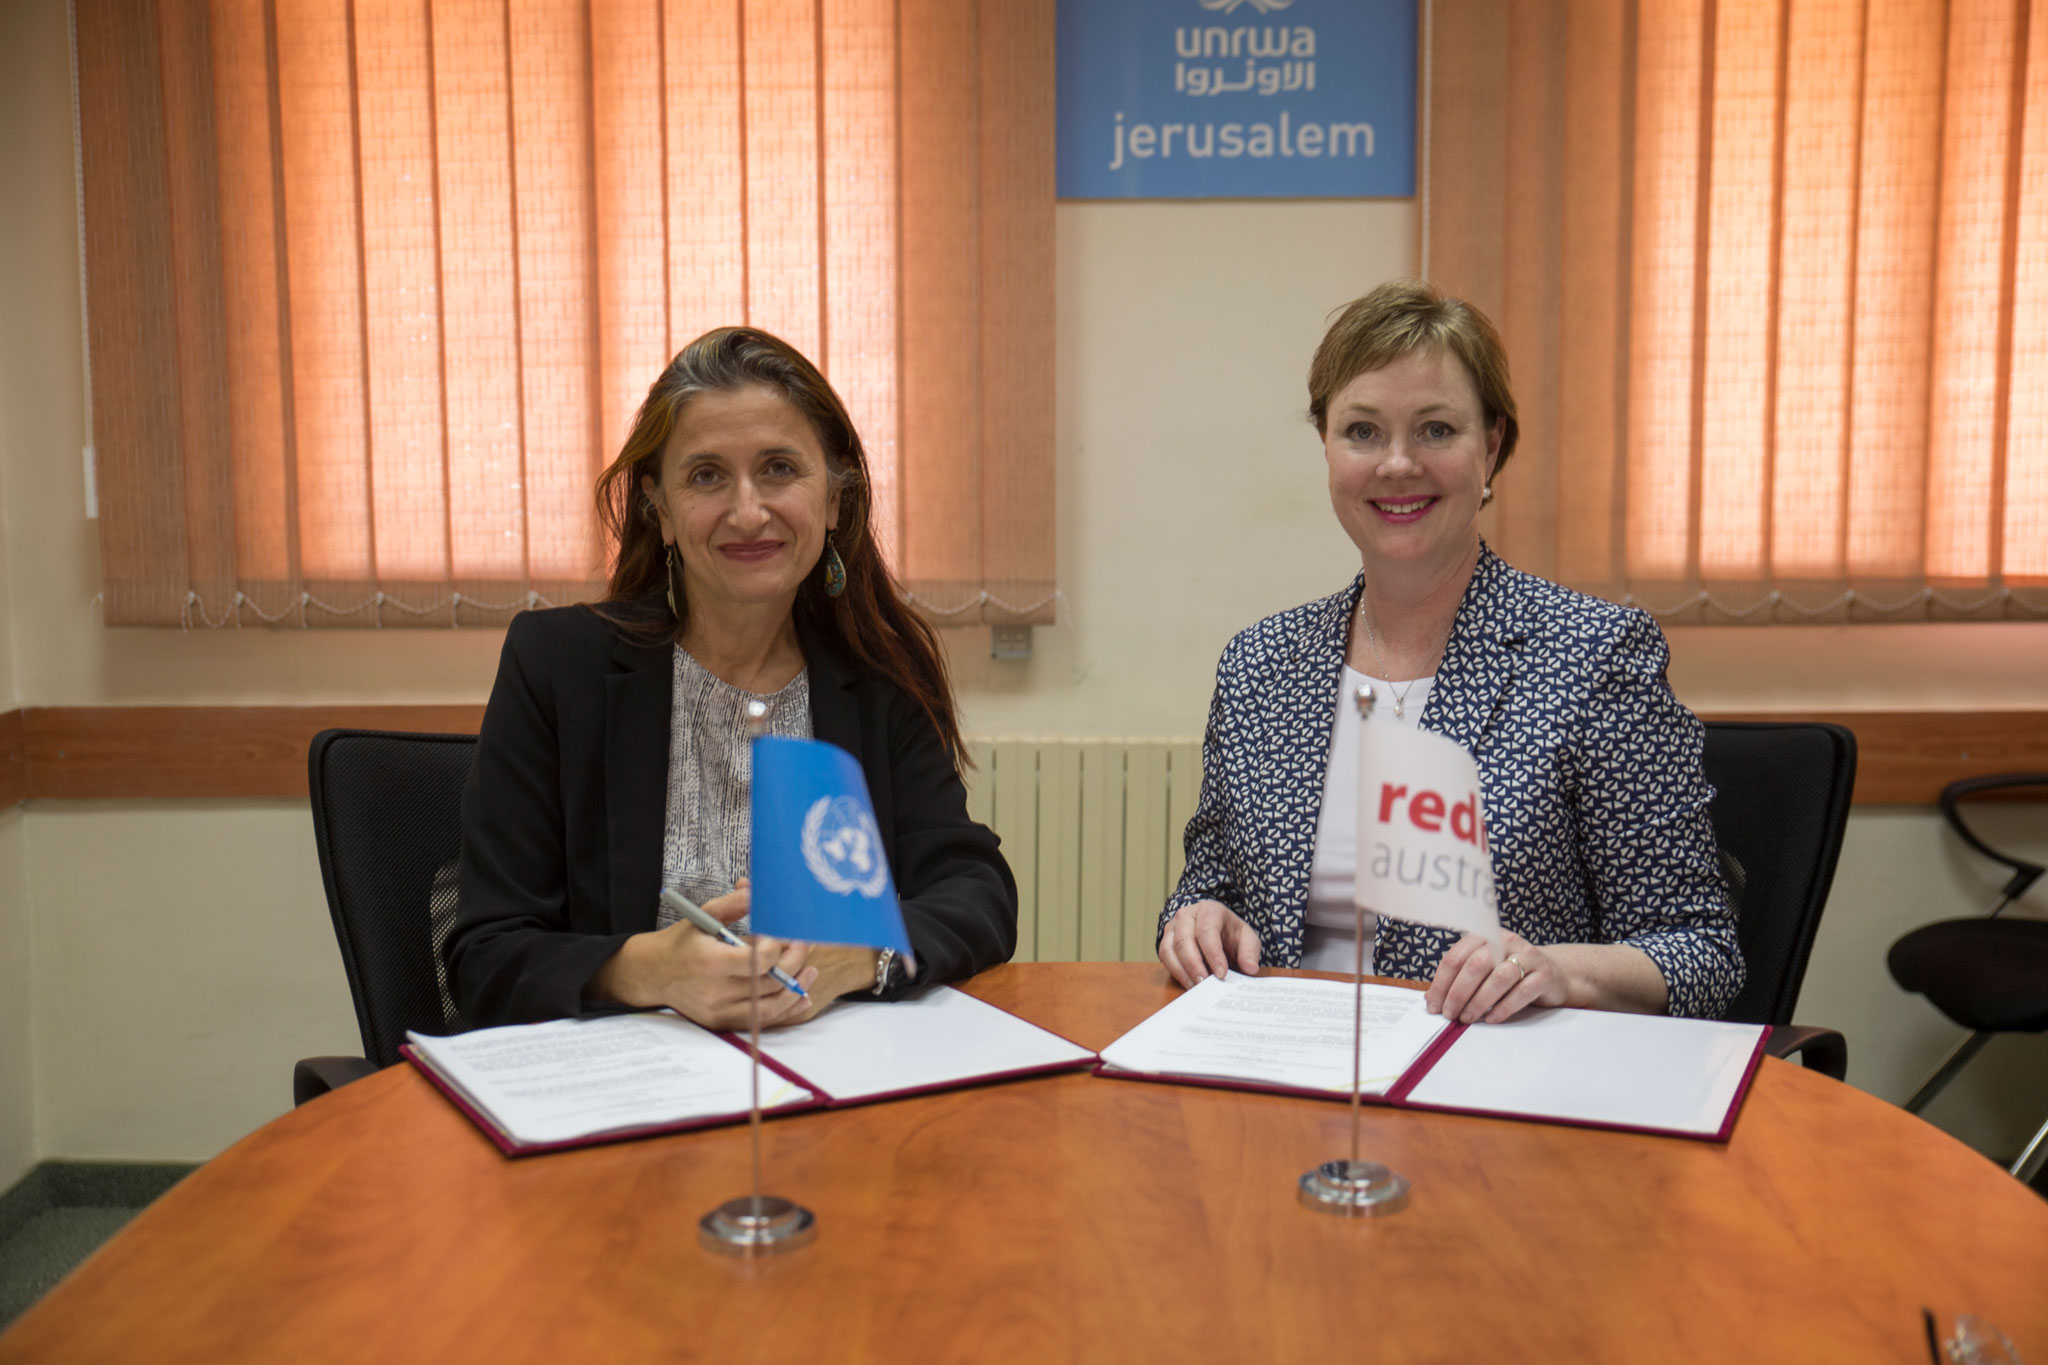 unrwa partners with redr australia to support emergency responses